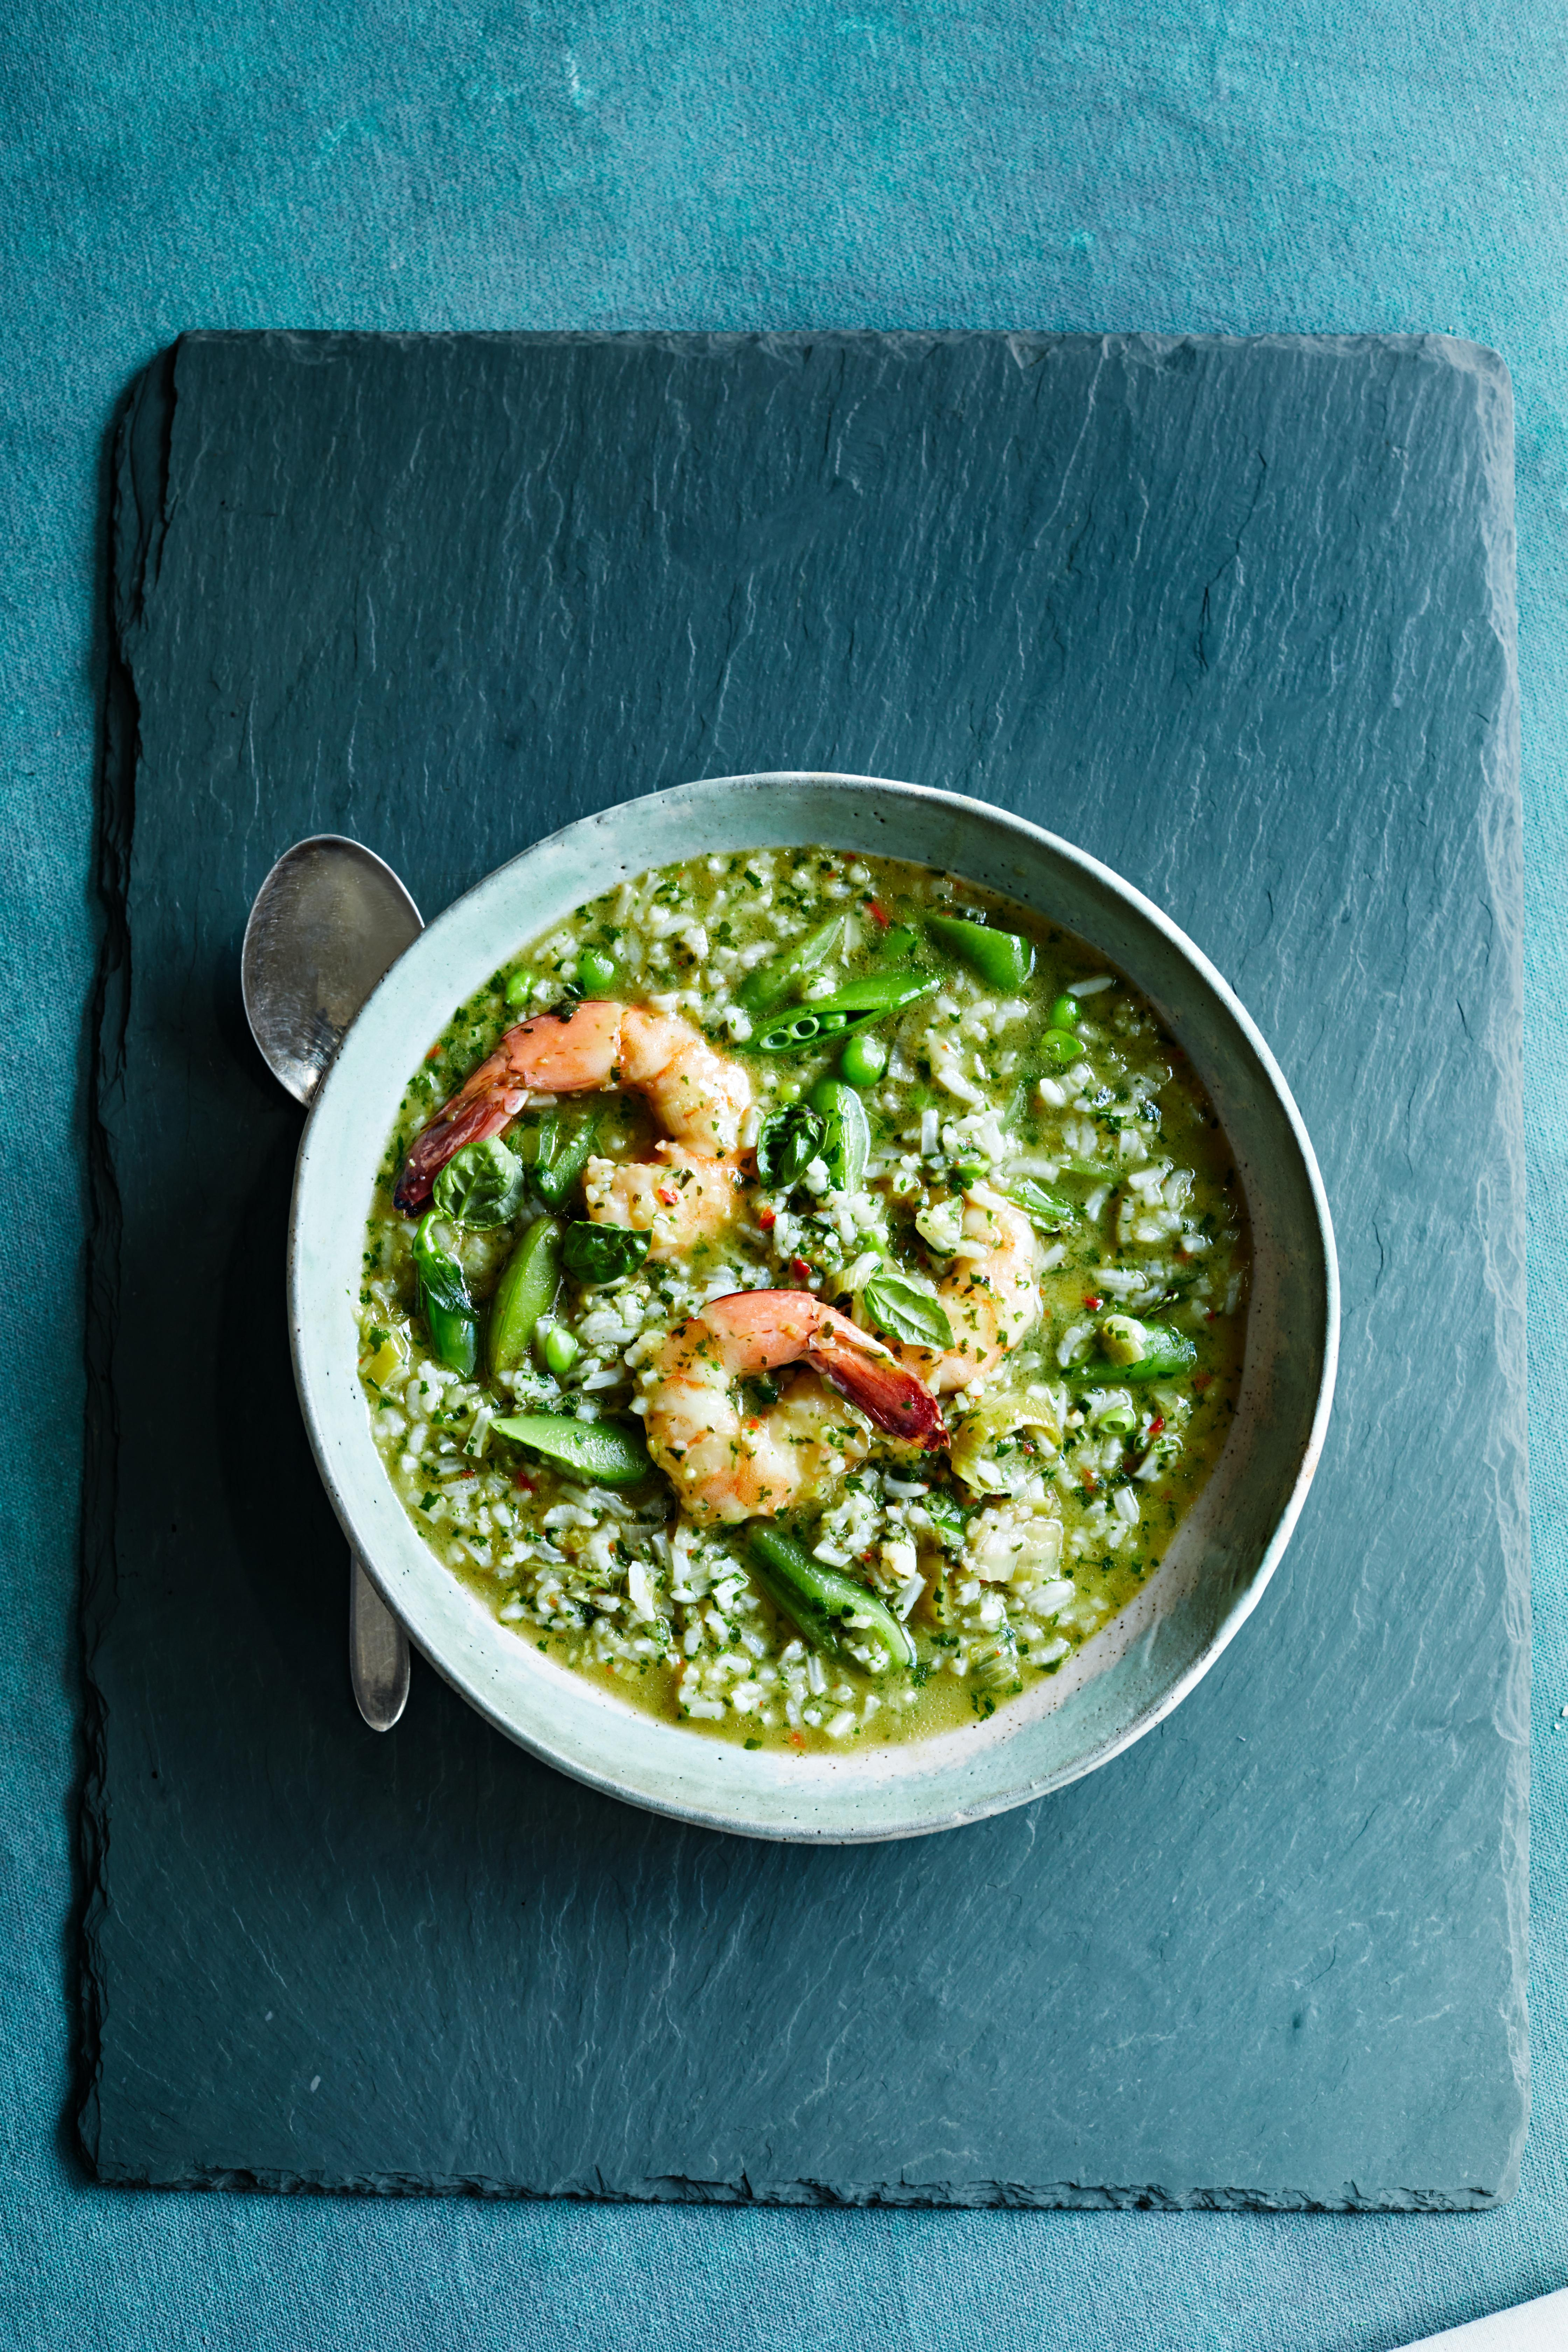 spicy green rice and shrimp